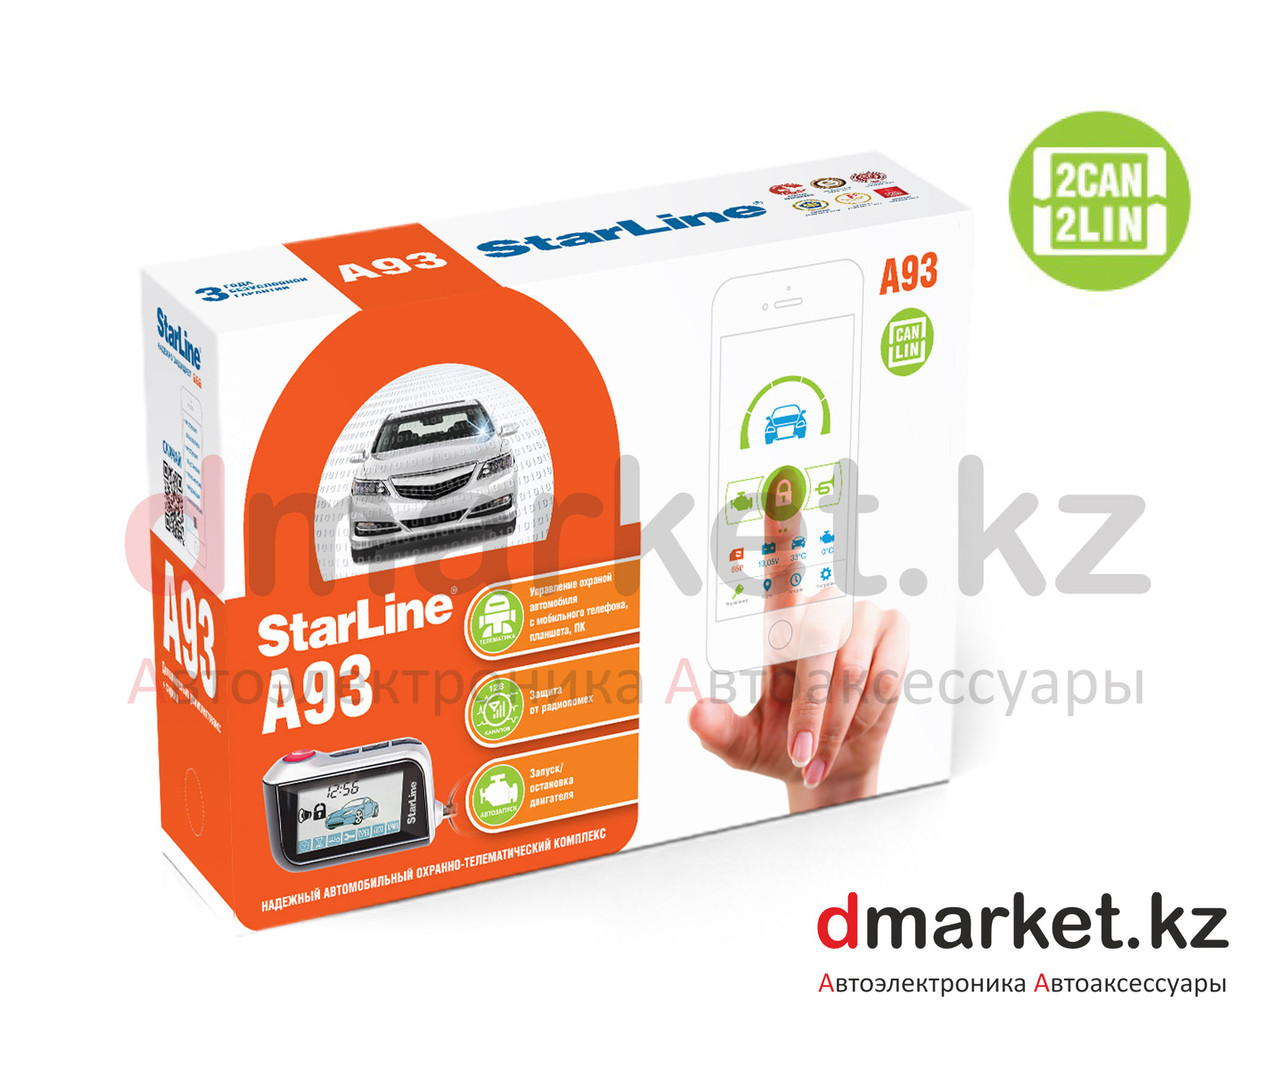 StarLine A93 2CAN+2LIN, 2 пульта, модуль CAN-LIN в комплекте